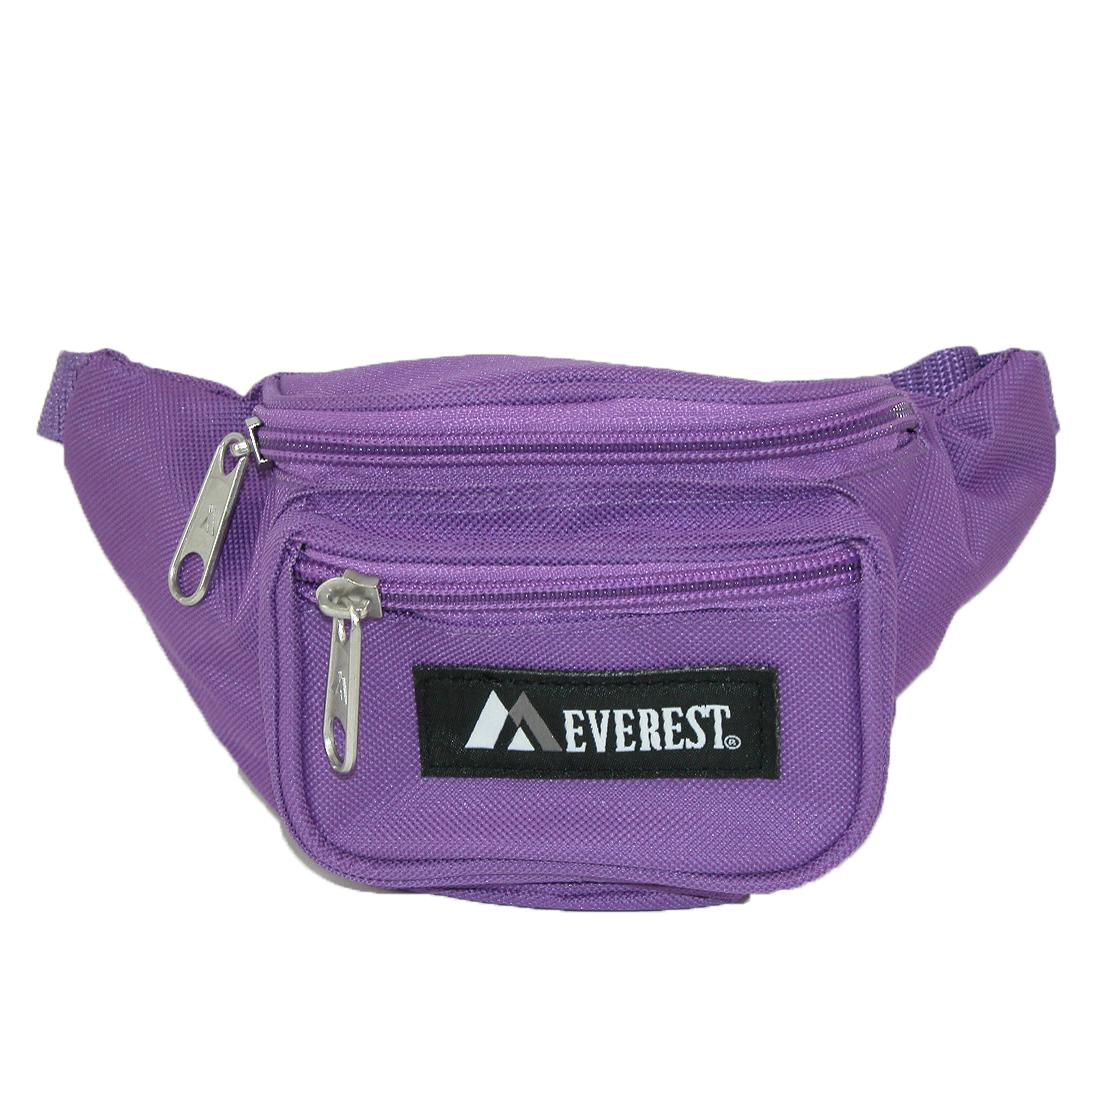 Everest Girls' Fabric Waist Pack Purse - (EV-GIRLS) photo